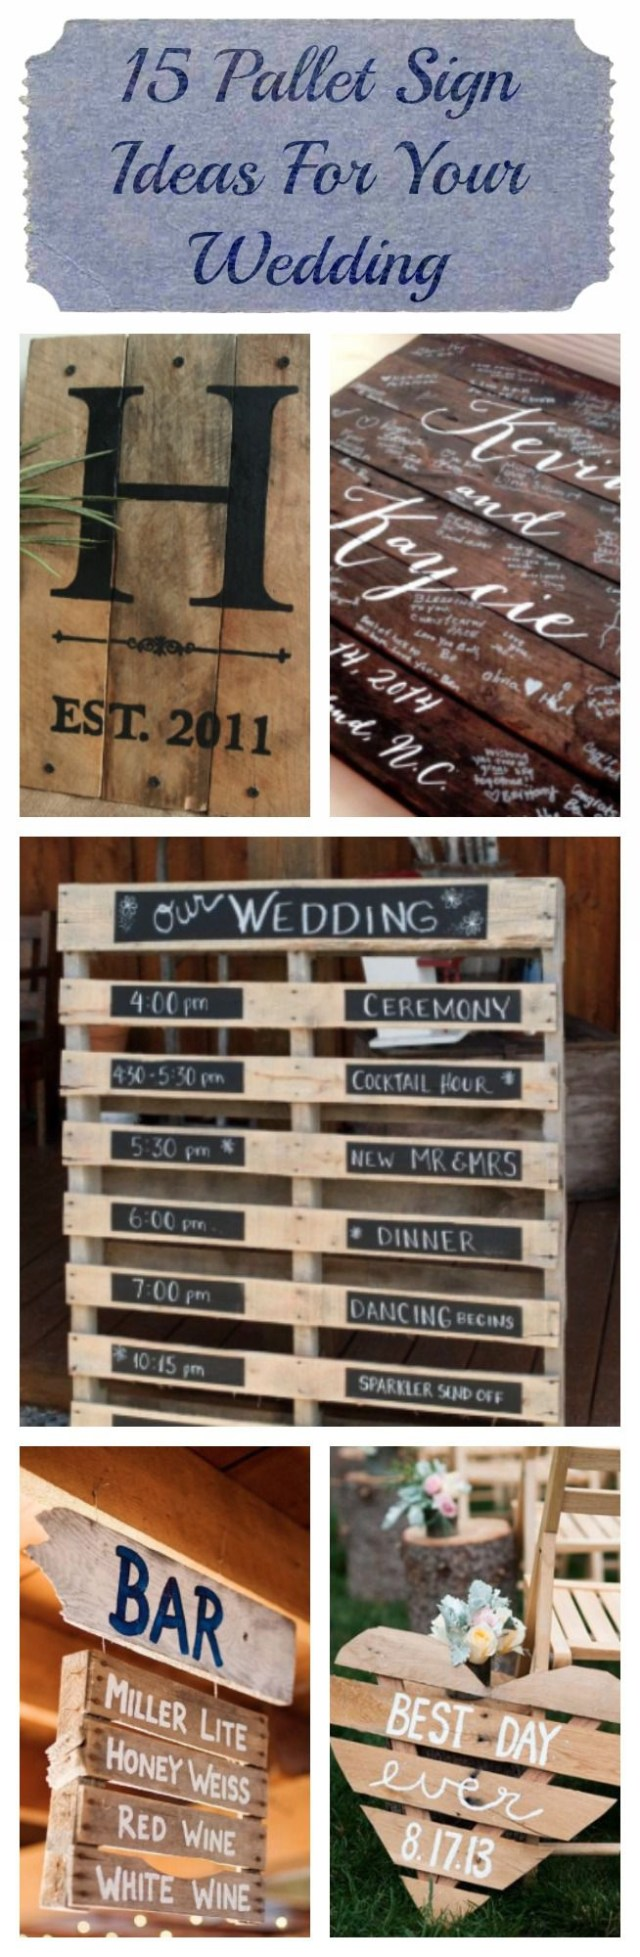 Wedding Pallet Ideas 15 Pallet Sign Ideas For Your Wedding Rustic Wedding Chic